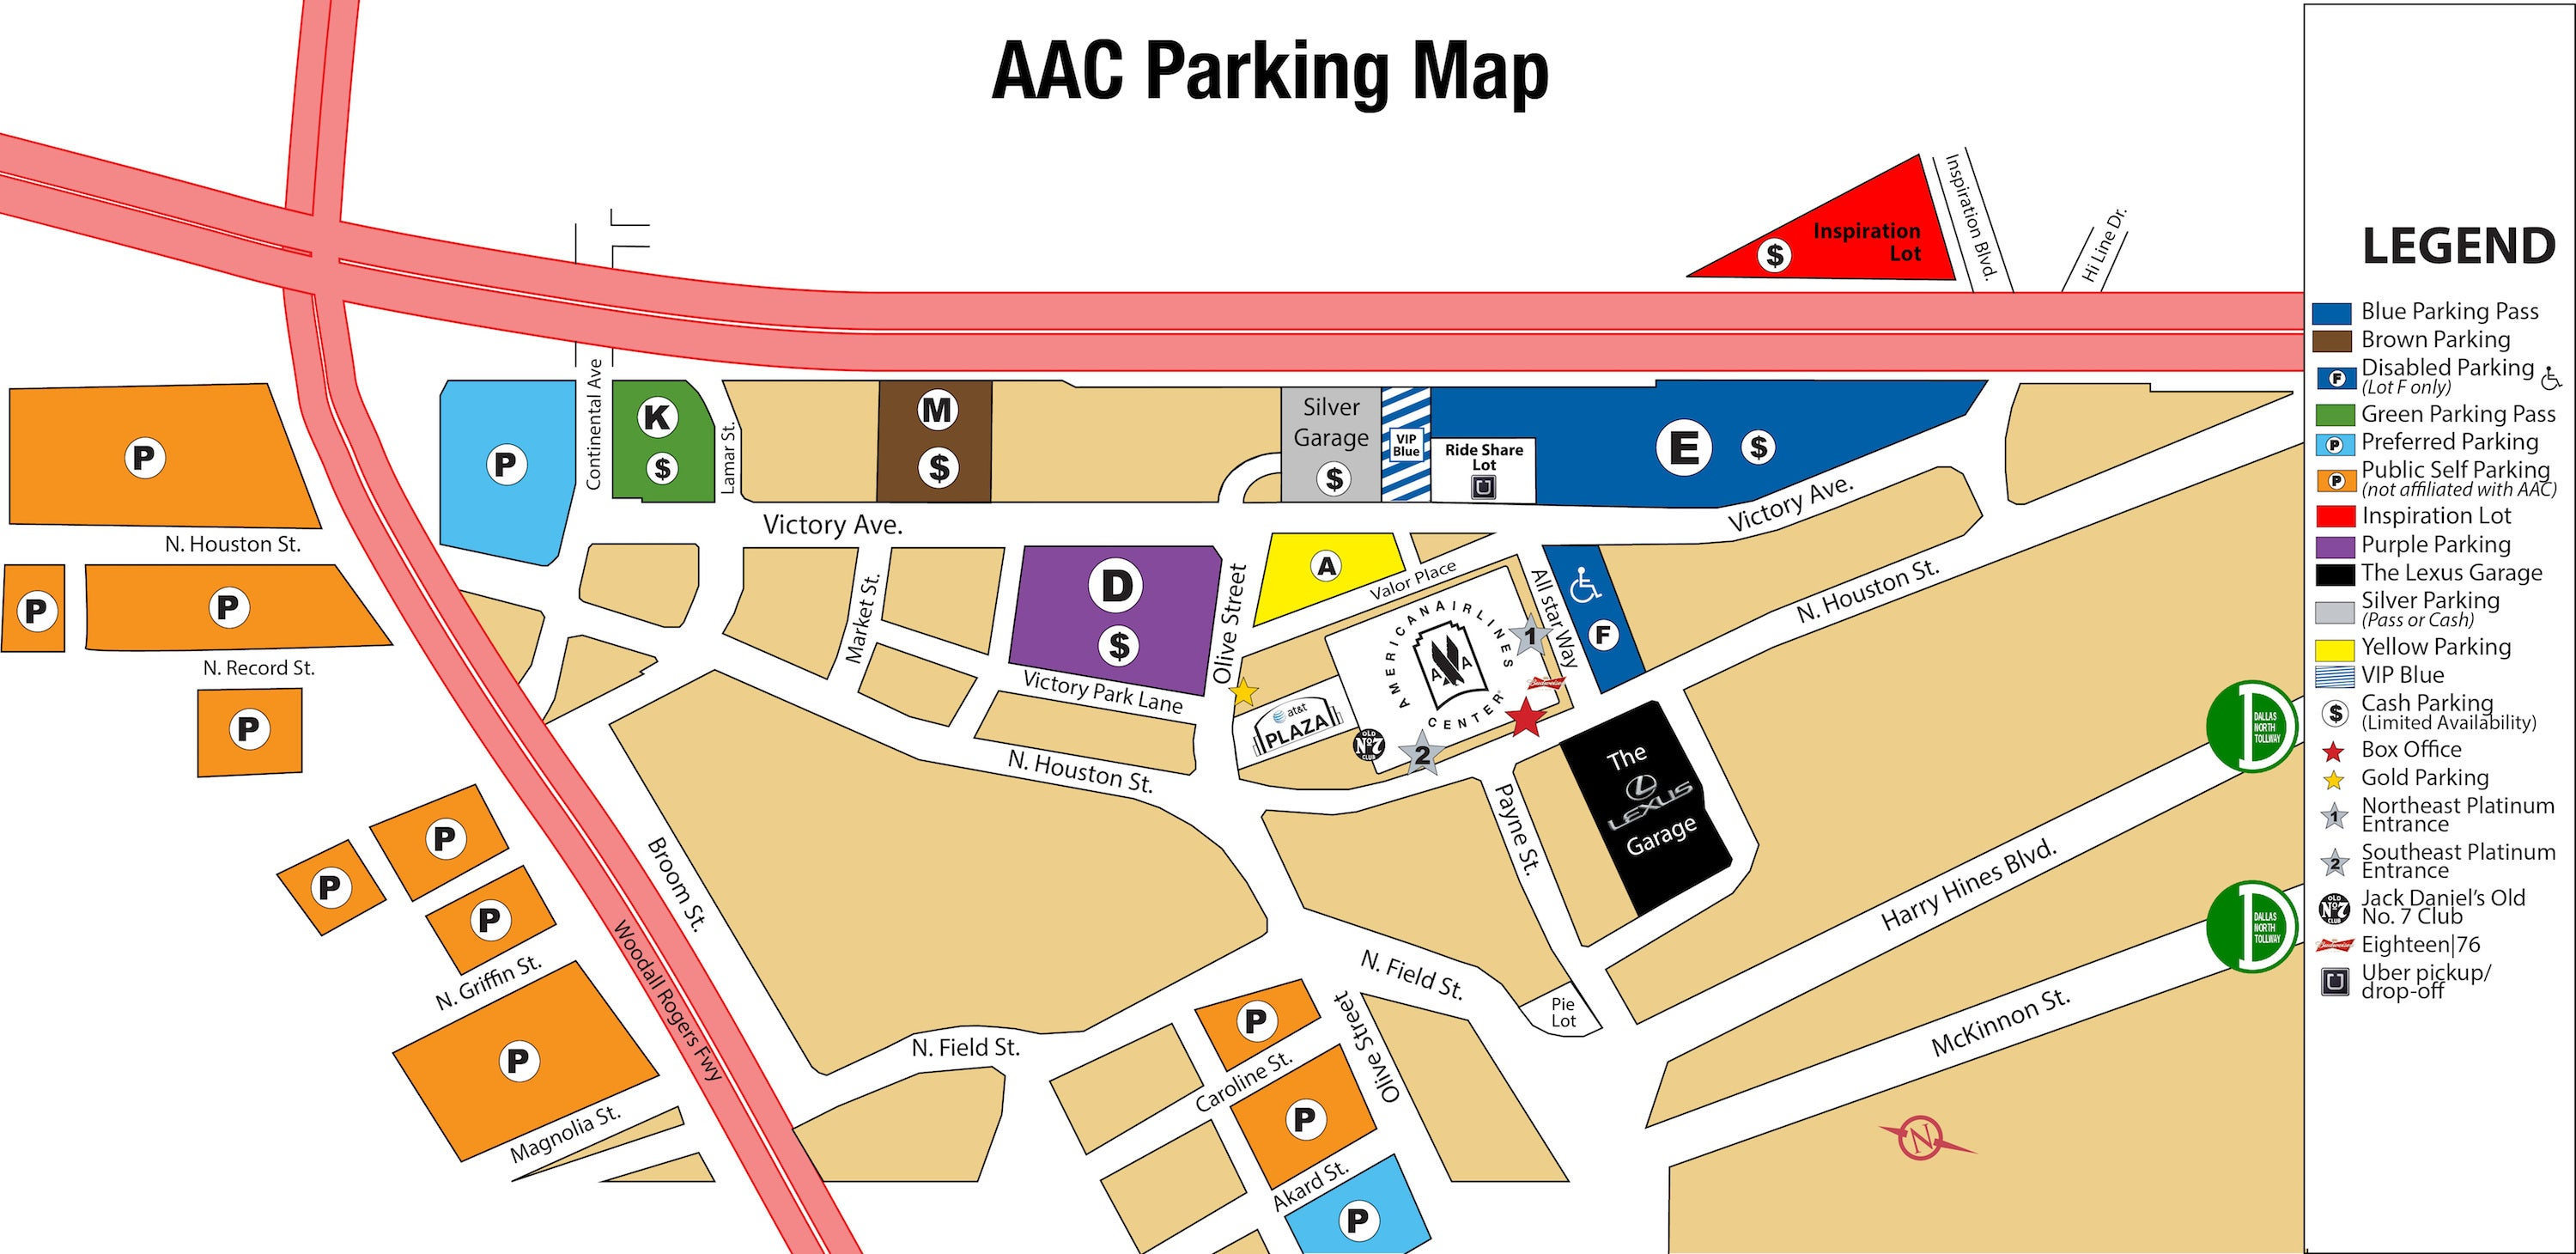 Quick Facts And Tips For The US Open StarStruck Ticket Blog - Us open tennis parking map